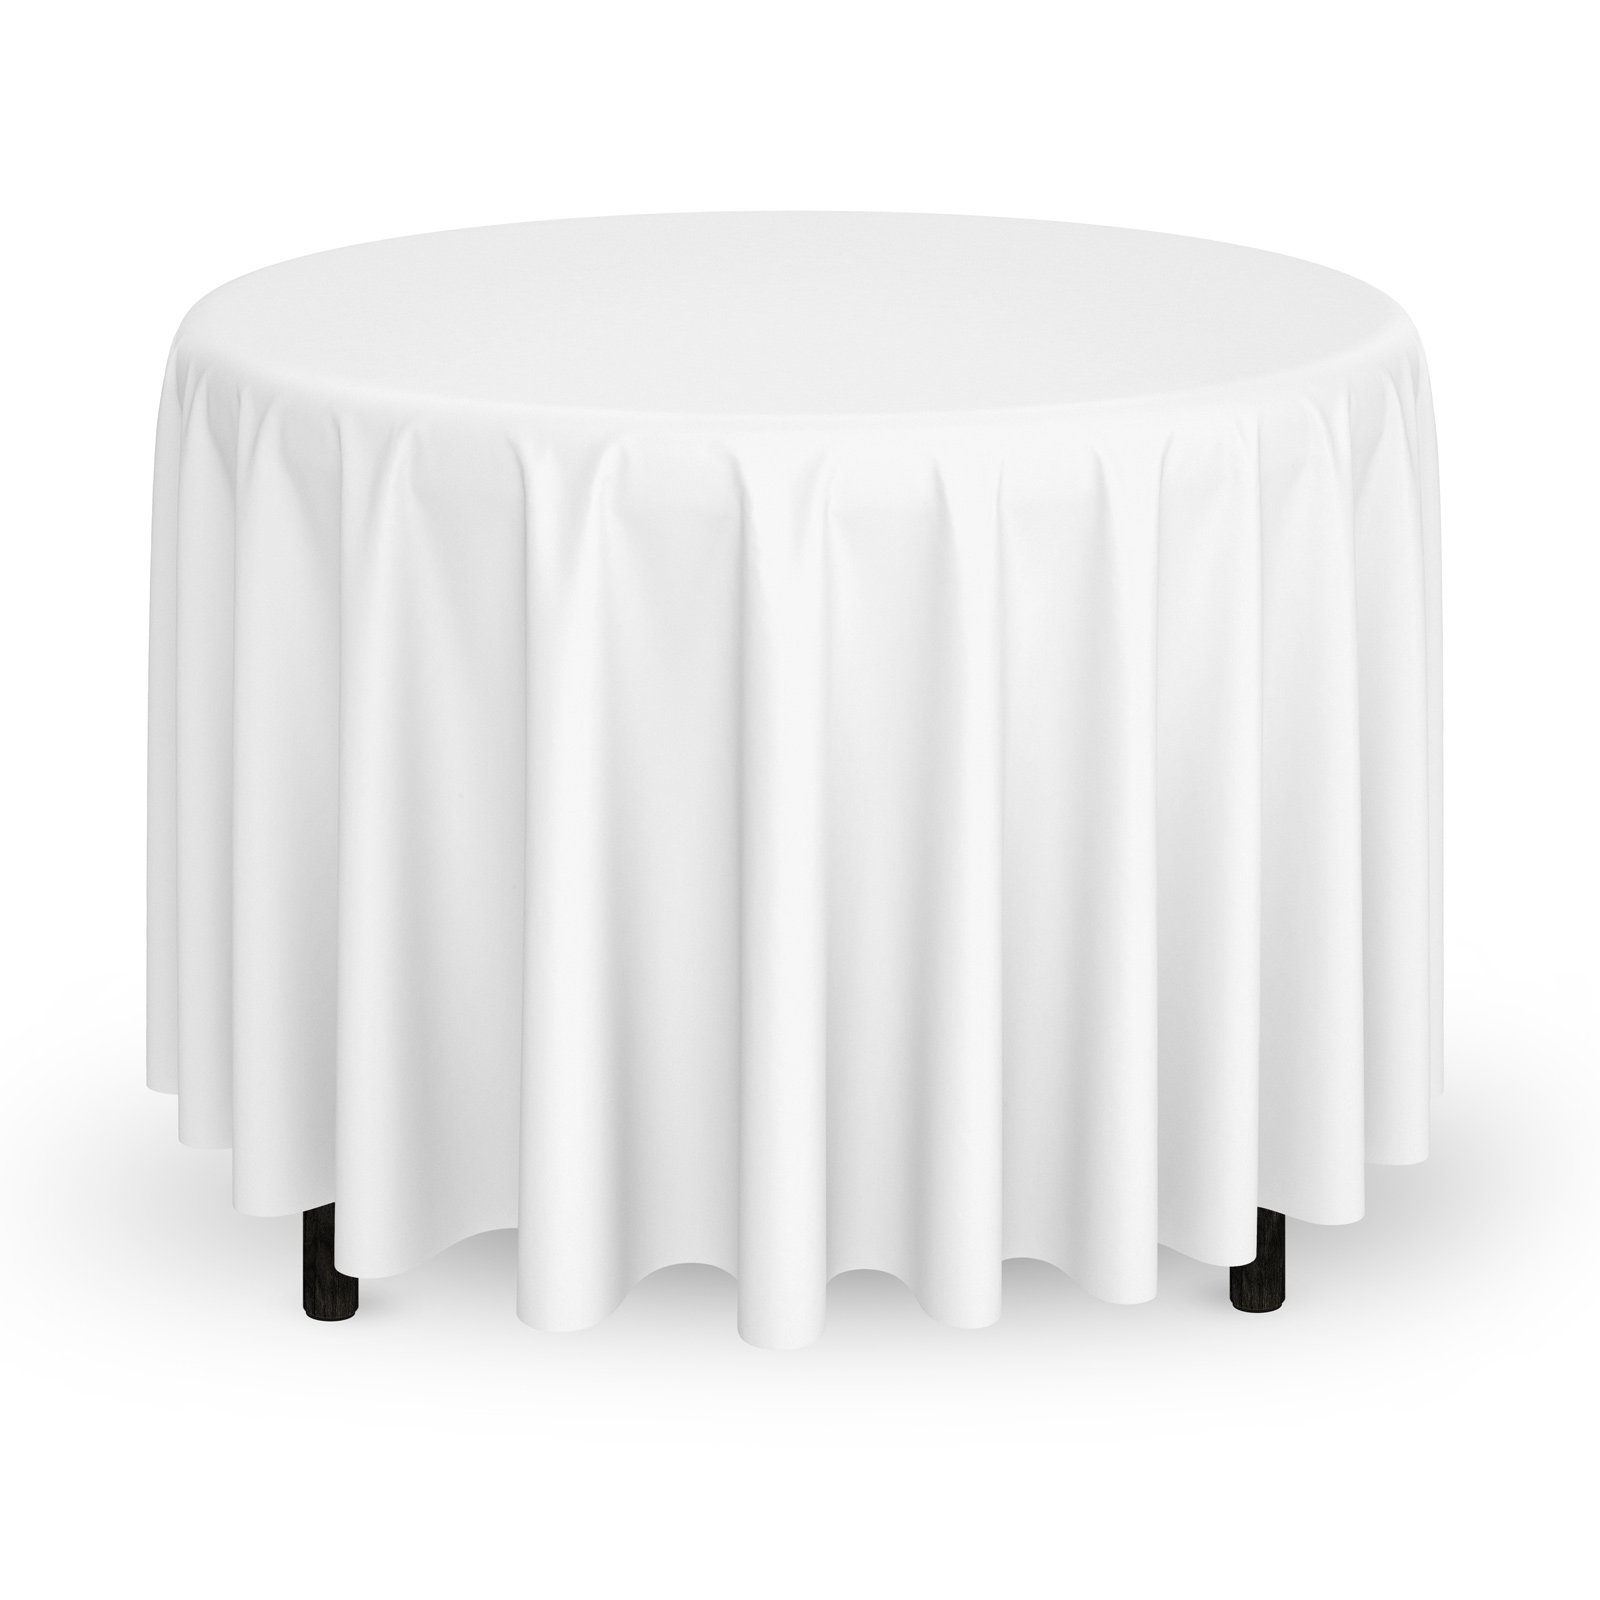 Mill & Thread - 20 Premium 132'' Round Tablecloths for Wedding/Banquet/Restaurant - Polyester Fabric Table Cloths - White